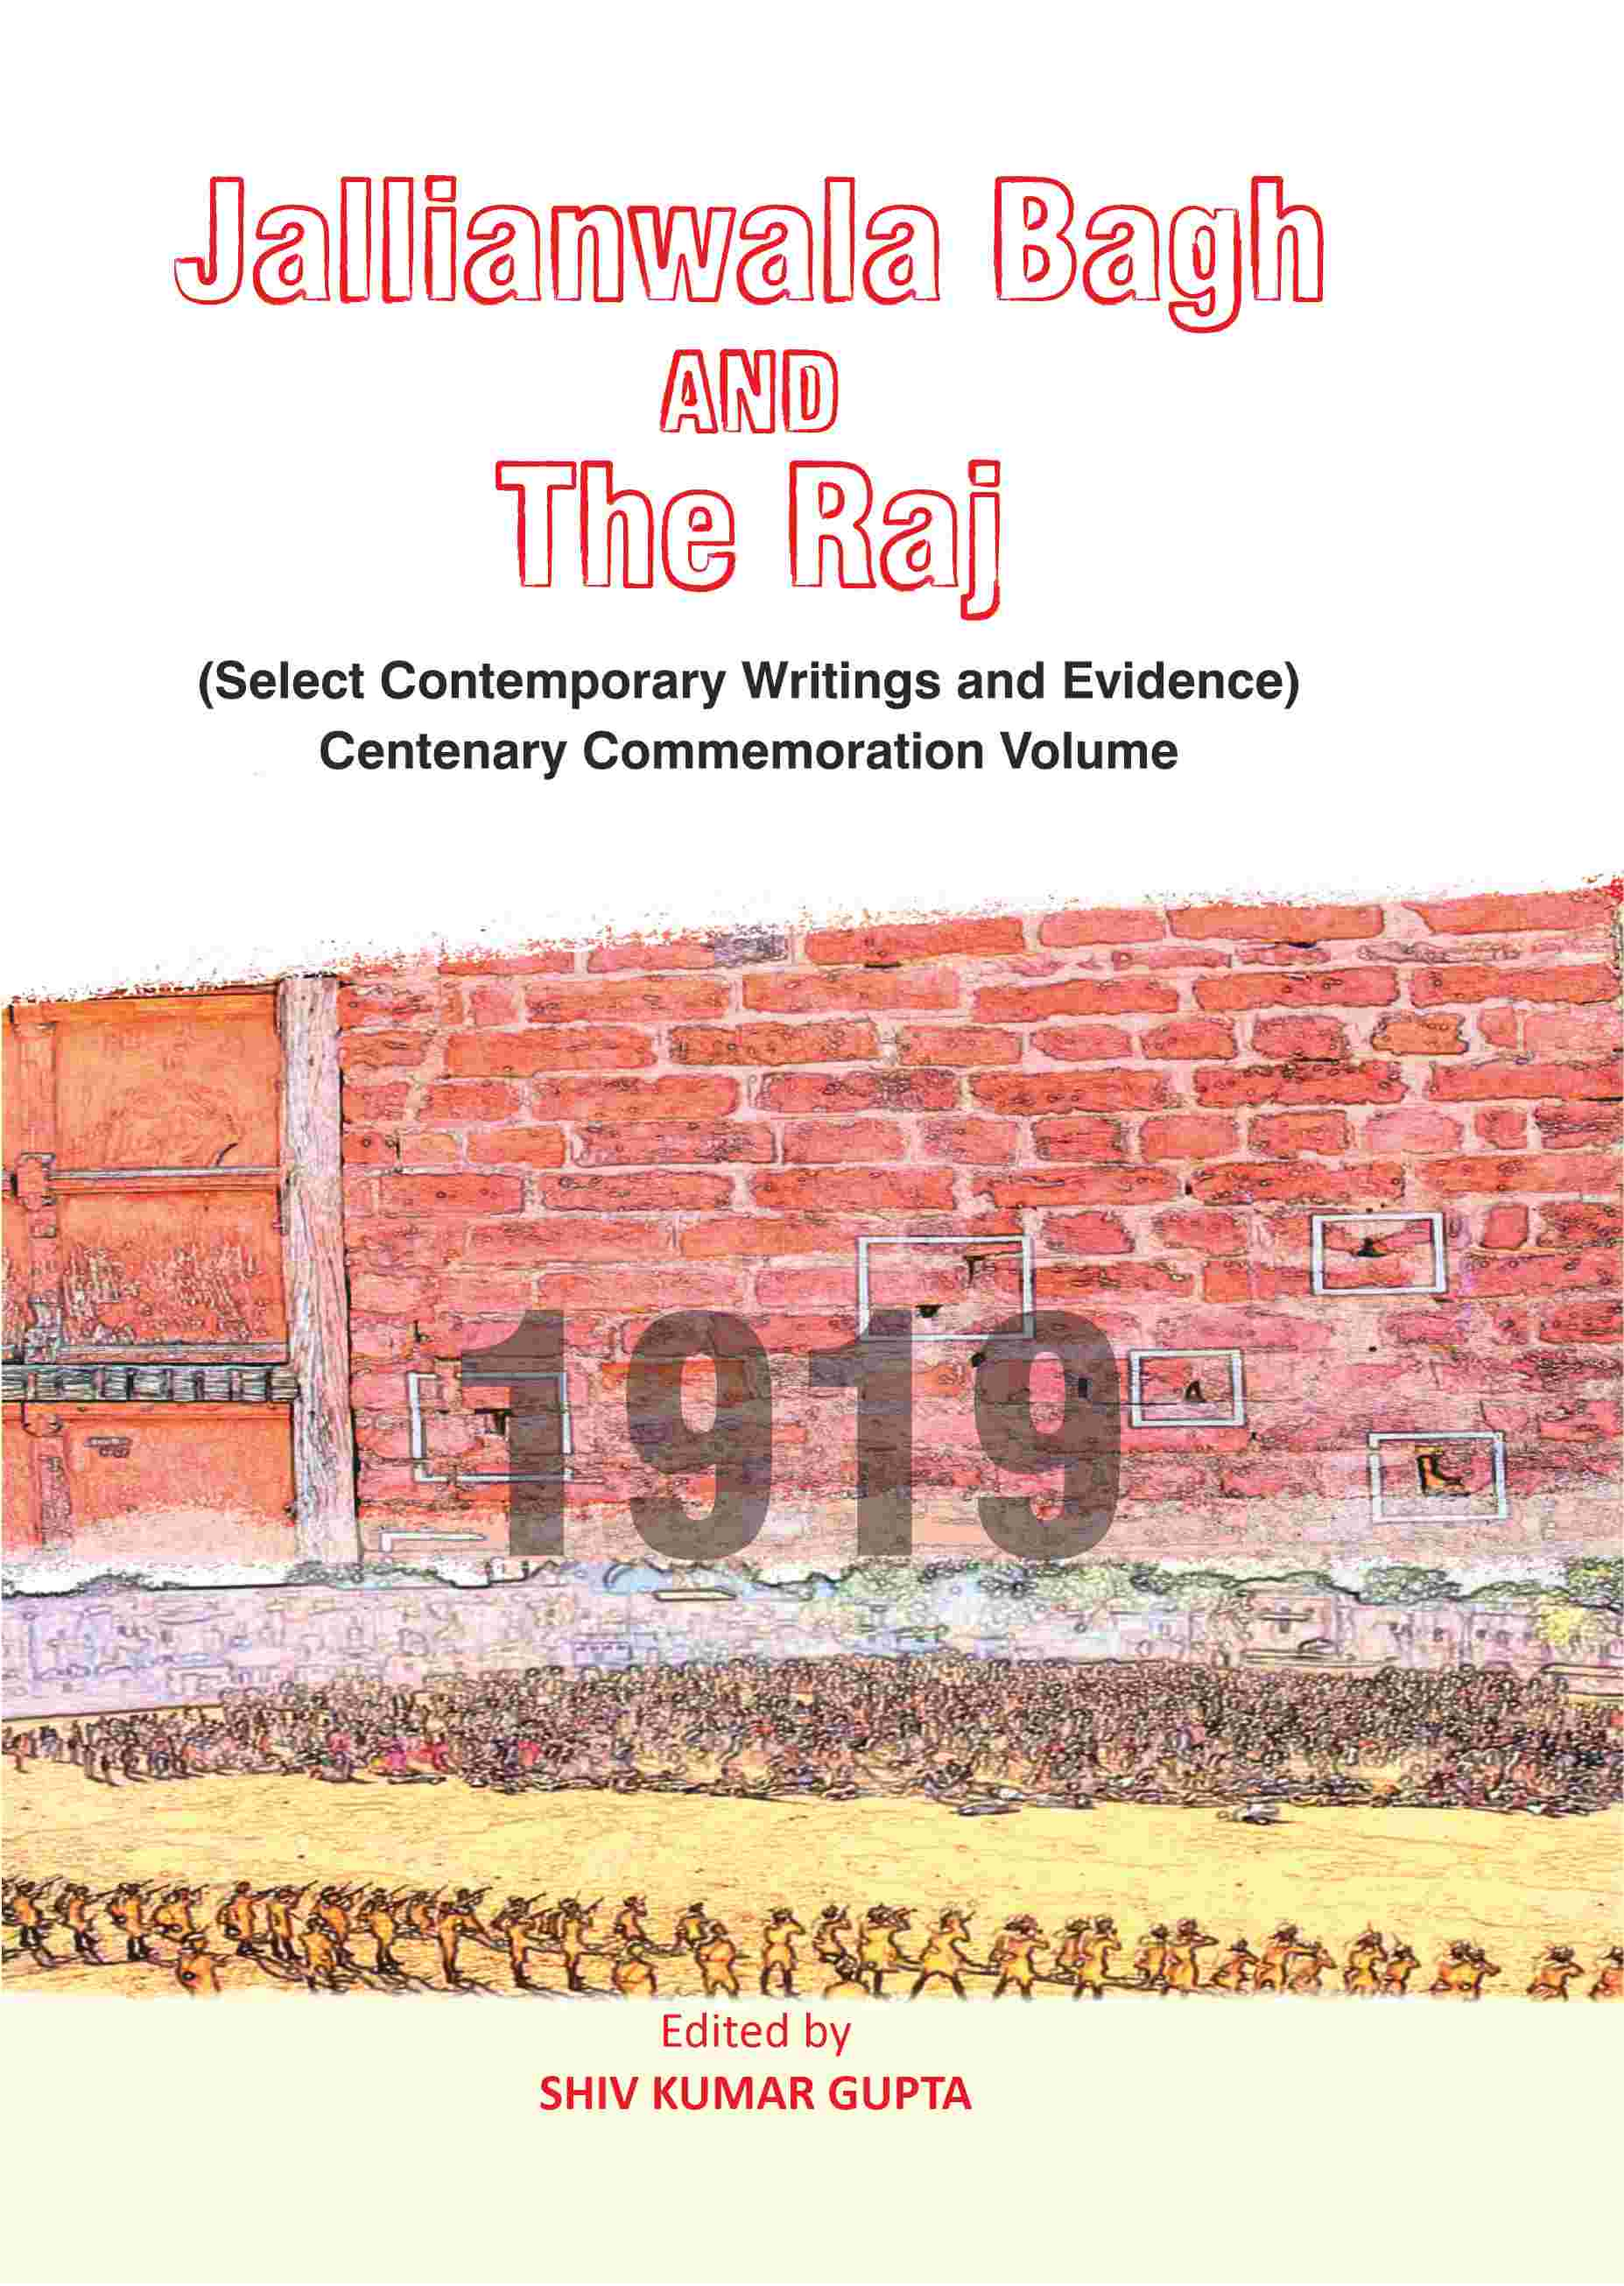 JALLIANWALA BAGH AND THE RAJ(SELECTED CONTEMPORARY WRITINGS AND EVIDENCE CENTENARY COMMEMORATION VOLUME) EDITED BY SHIV KUMAR GUPTA